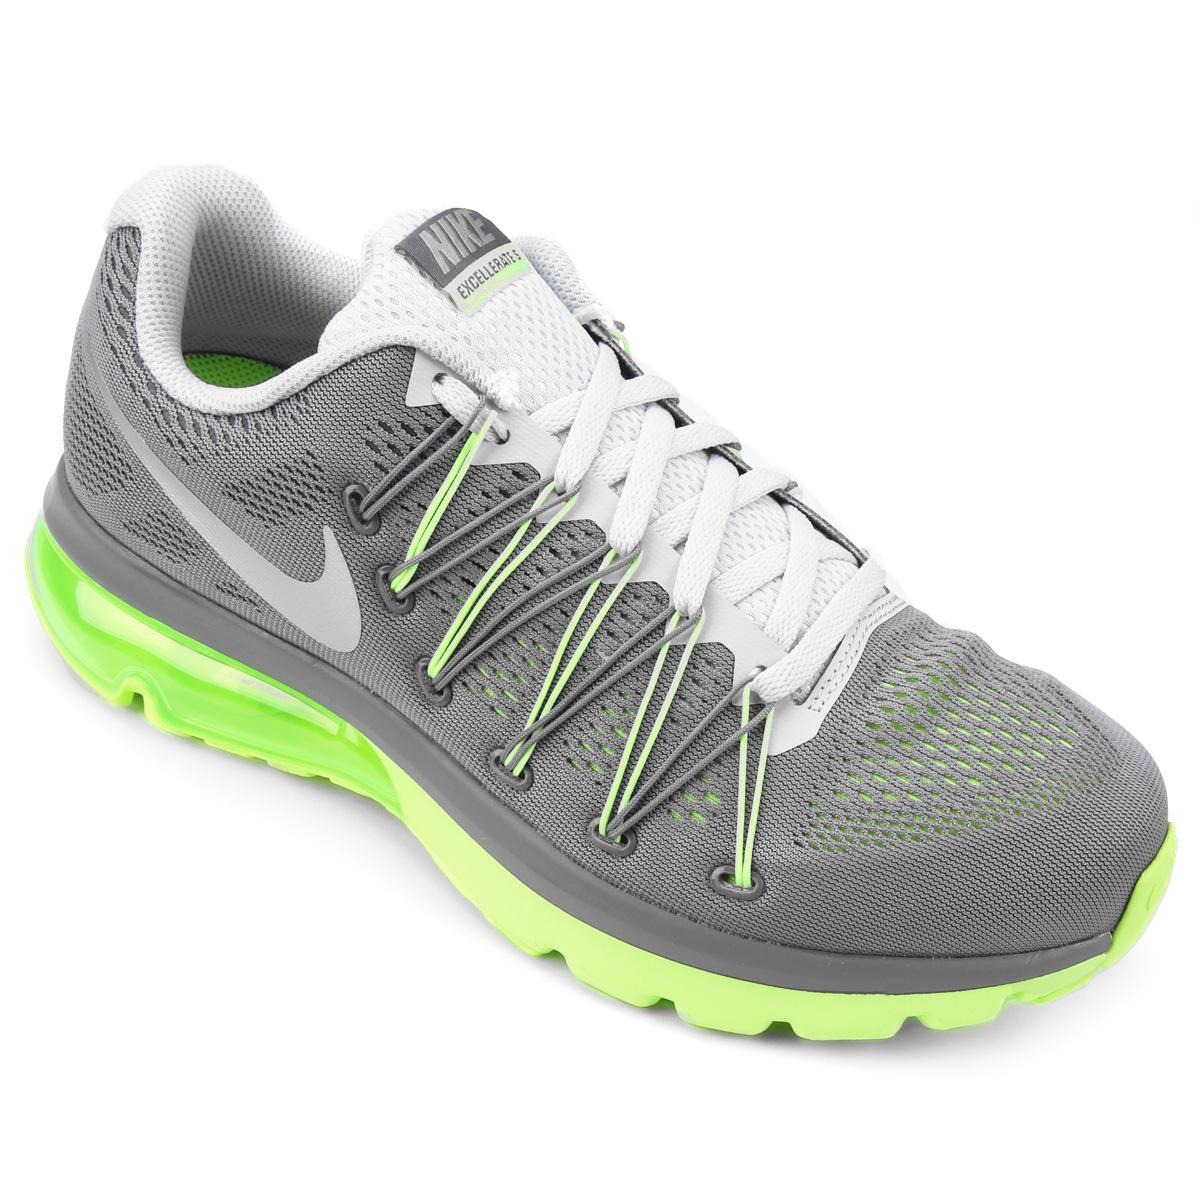 fa02a0488d469 ... cheapest tênis nike air max excellerate 5 original nf 111700.  carregando zoom. d4822 31204